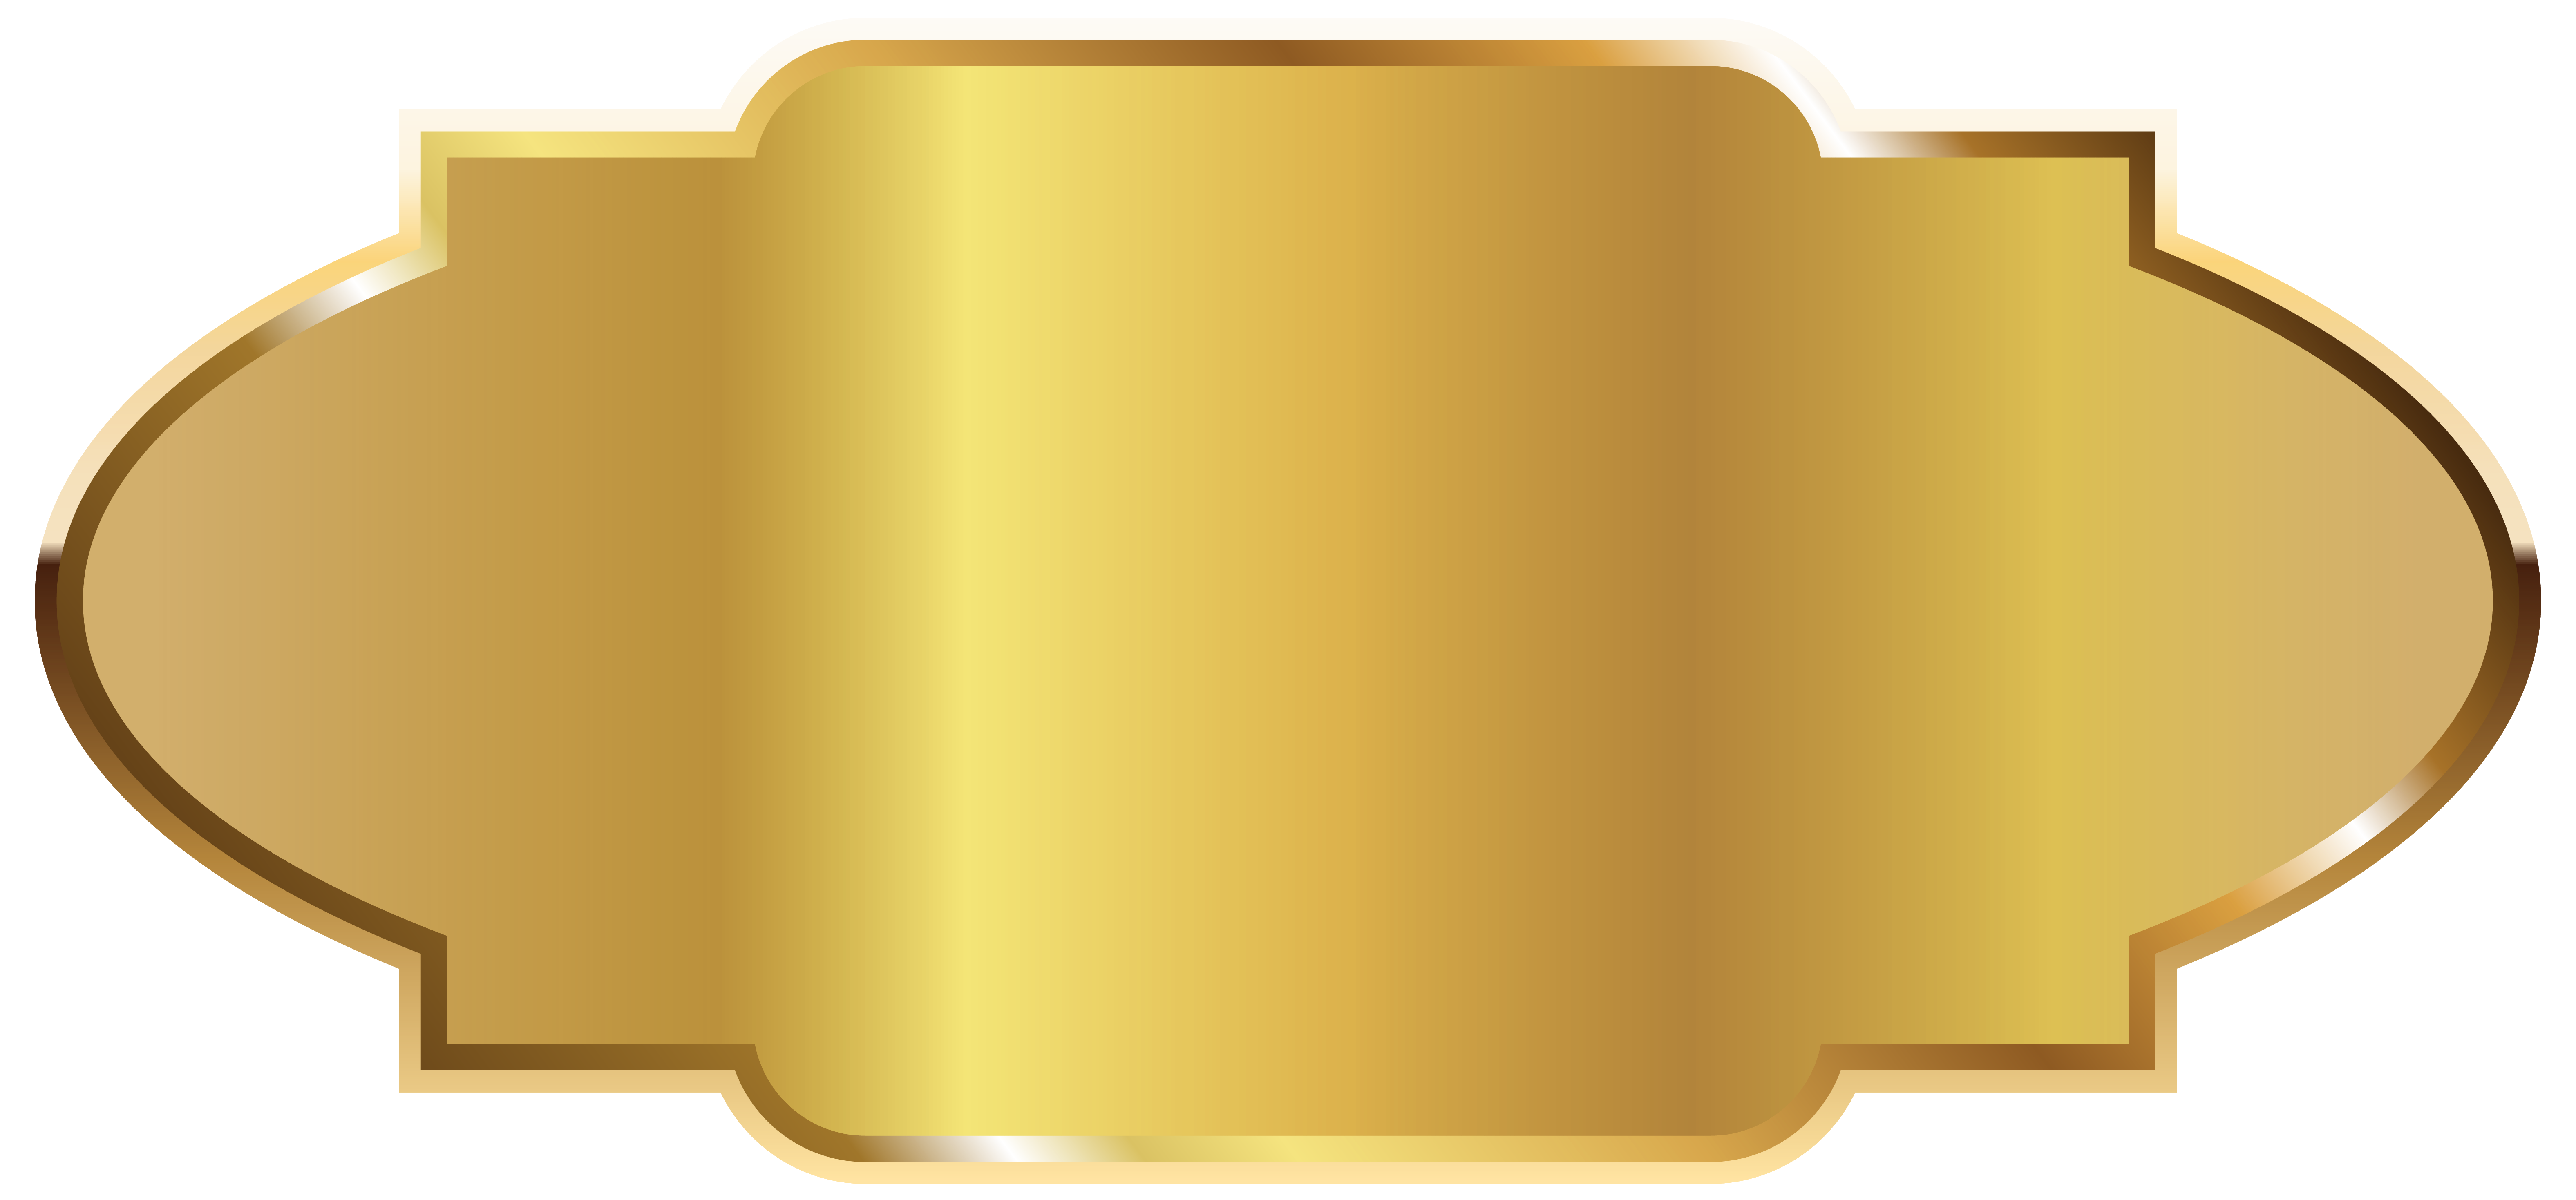 Golden label template png. Ticket clipart gold